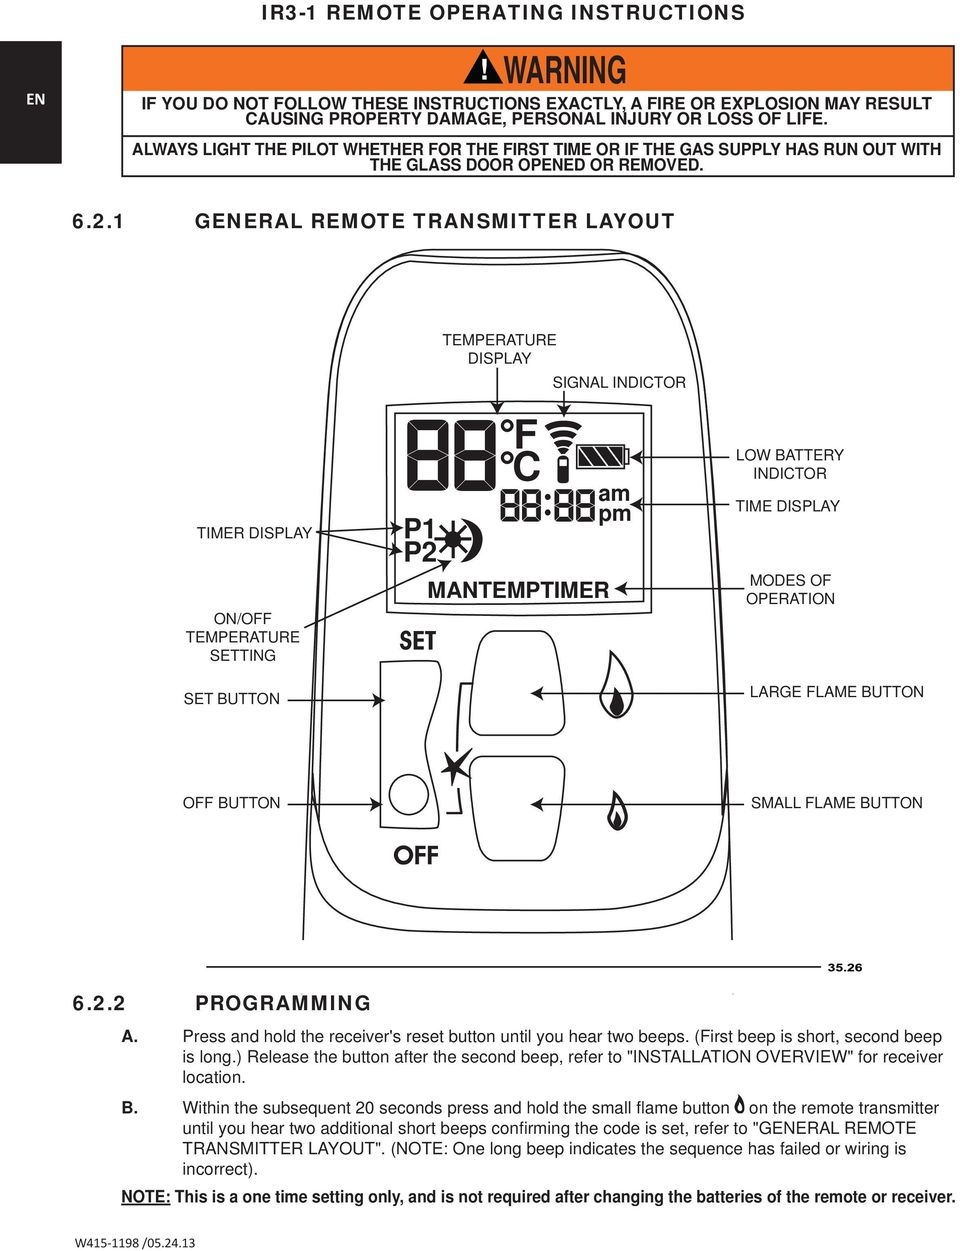 1 GENERAL REMOTE TRANSMITTER LAYOUT TIMER DISPLAY ON/OFF TEMPERATURE SETTING SET BUTTON P1 P2 TEMPERATURE DISPLAY SIGNAL INDICTOR F C : MANTEMPTIMER am pm LOW BATTERY INDICTOR TIME DISPLAY MODES OF